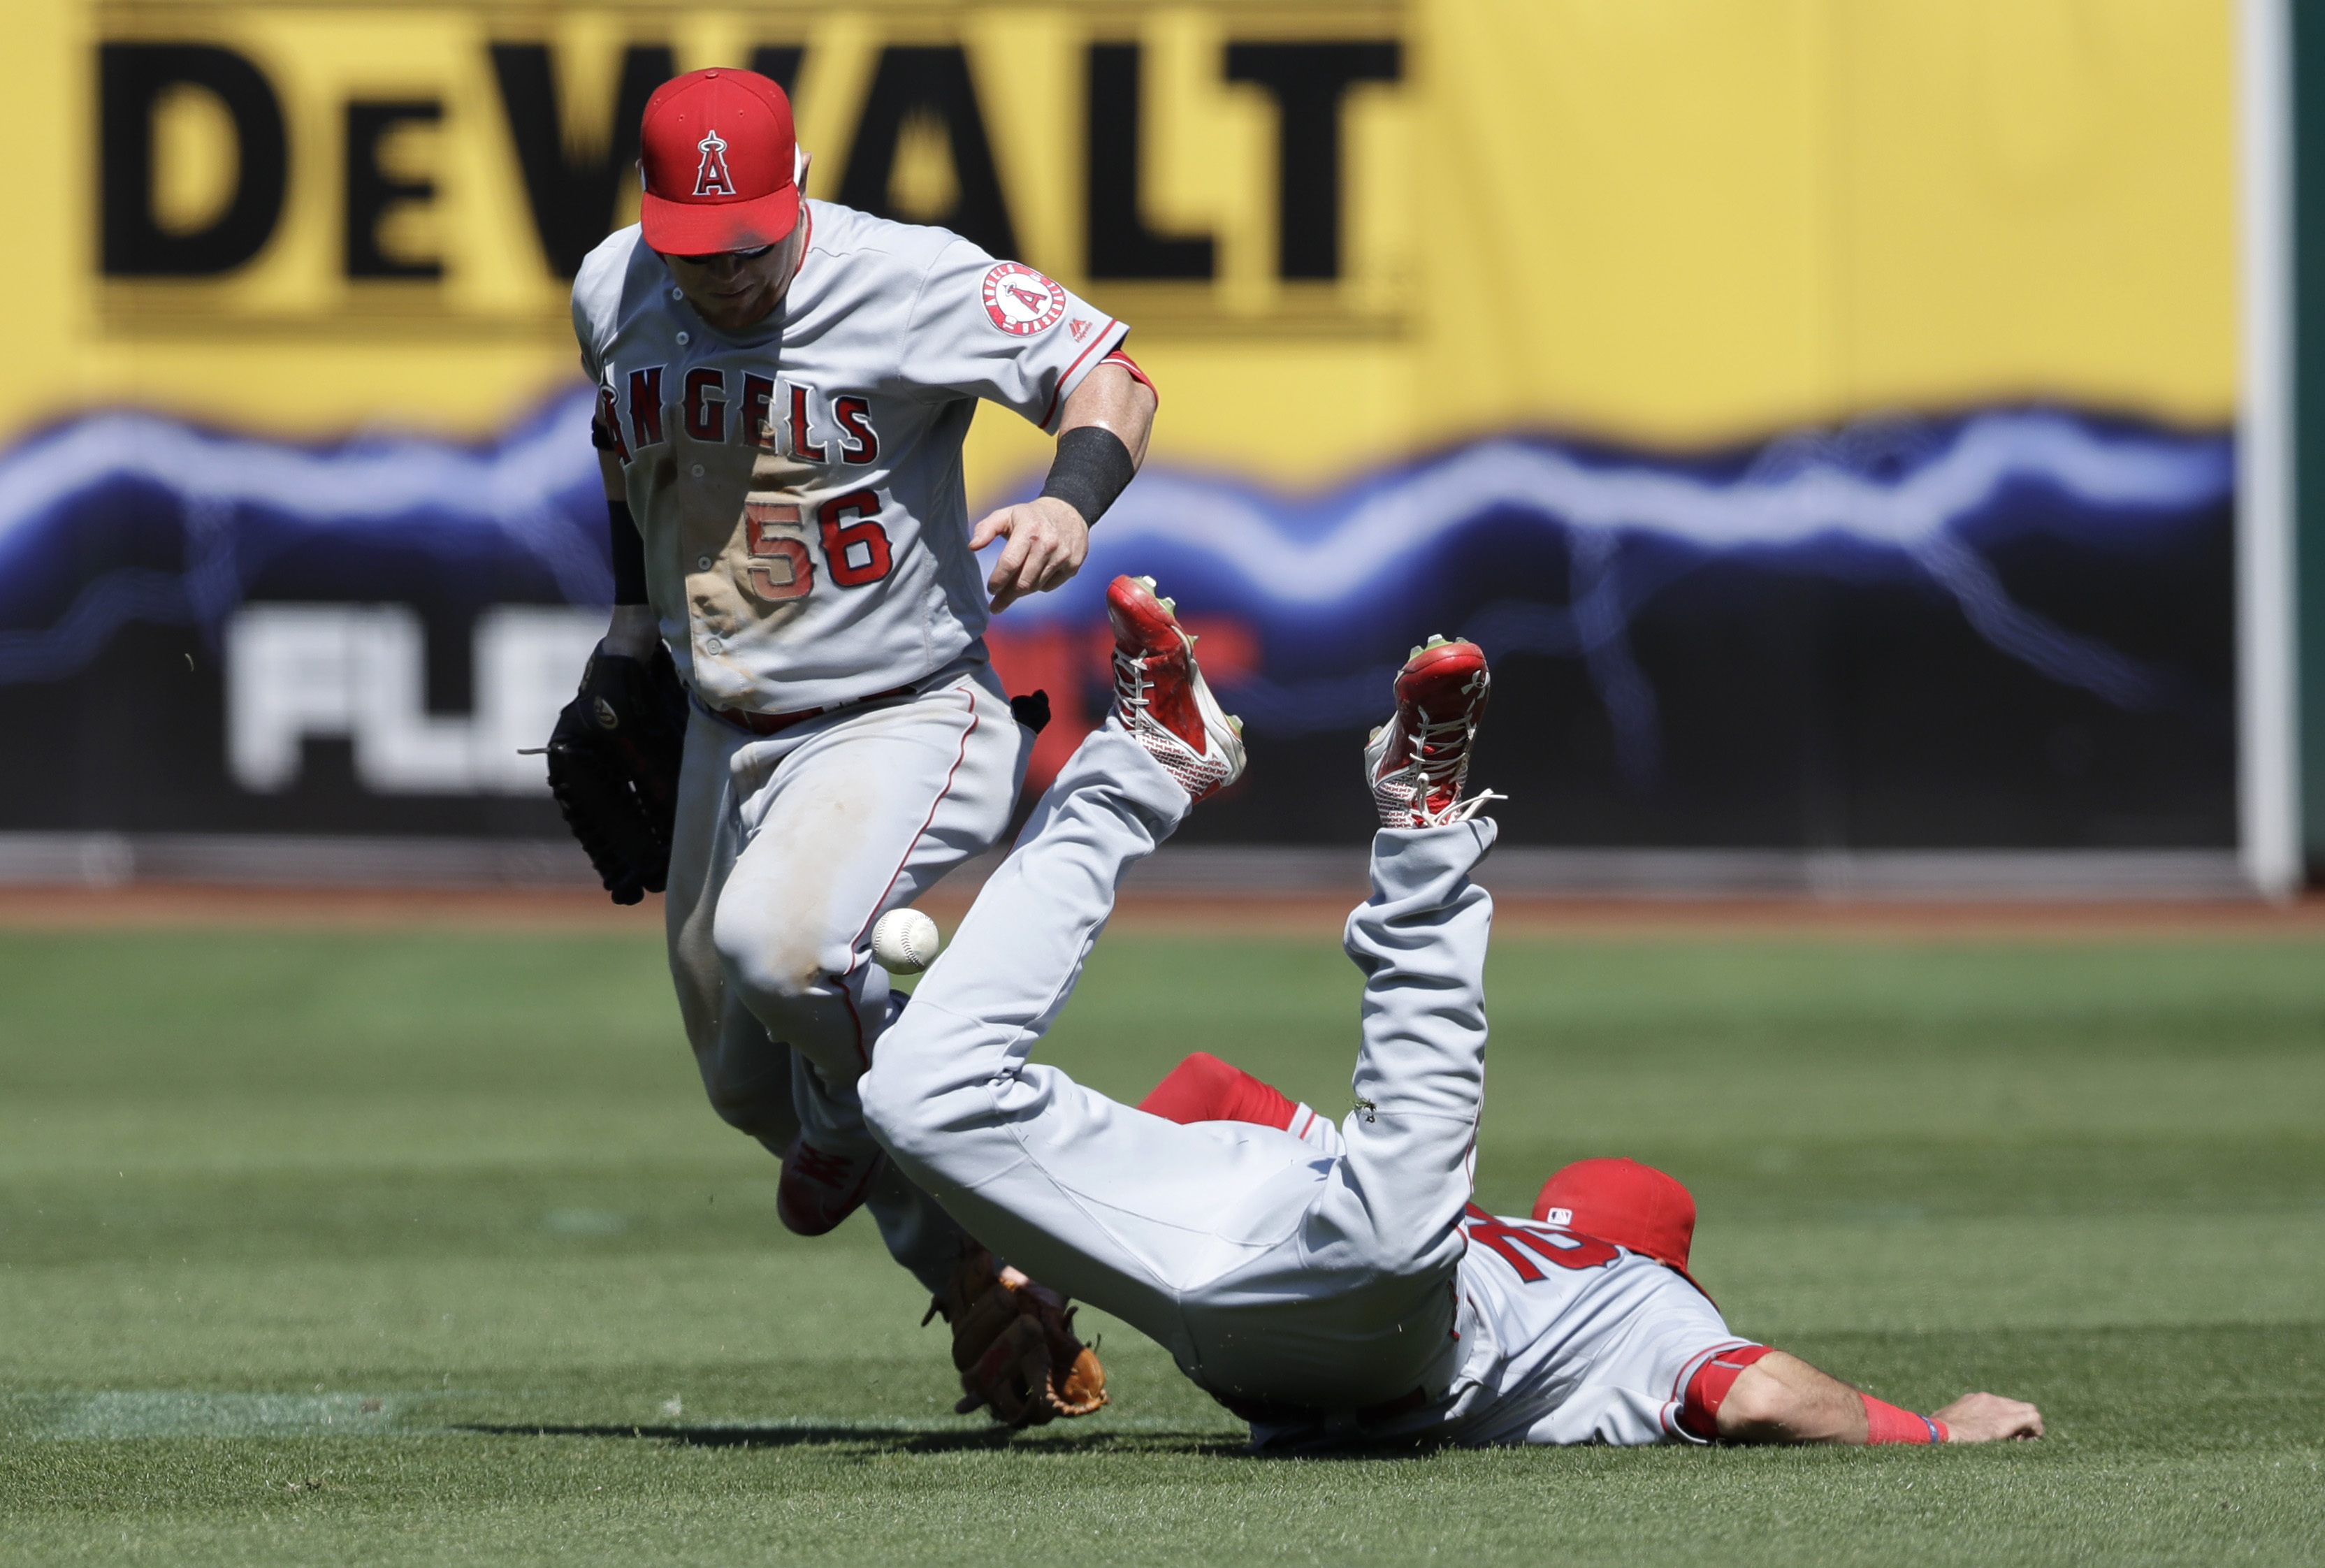 Los Angeles Angels second baseman Kaleb Cowart, bottom, collides with right fielder Kole Calhoun (56) on a double by Oakland Athletics' Danny Valencia during the fifth inning of a baseball game Monday, Sept. 5, 2016, in Oakland, Calif. (AP Photo/Marcio Jo